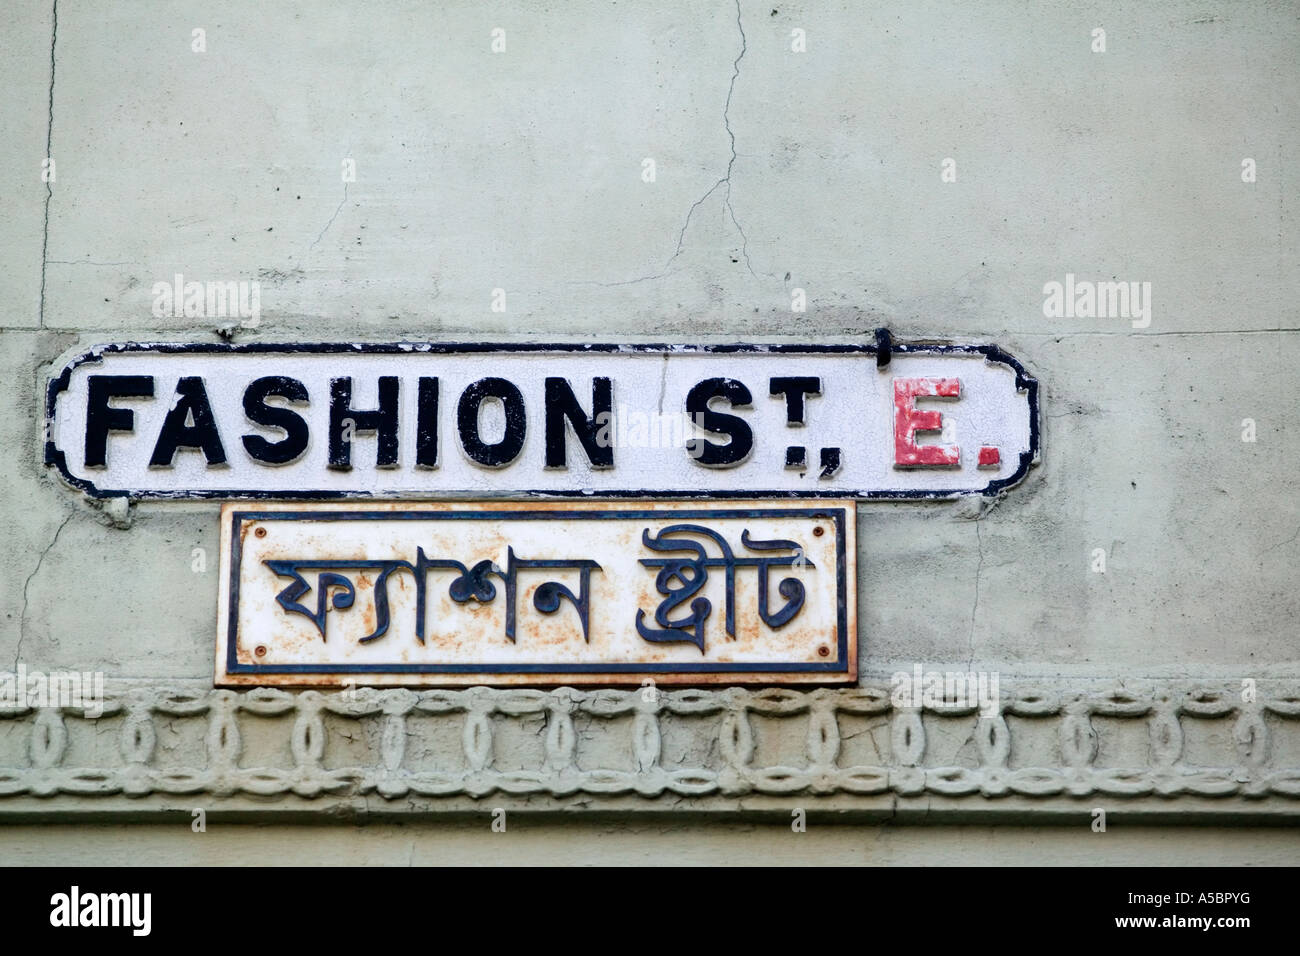 Fashion Street Road Sign in Brick Lane area of London with Bengali lettering - Stock Image